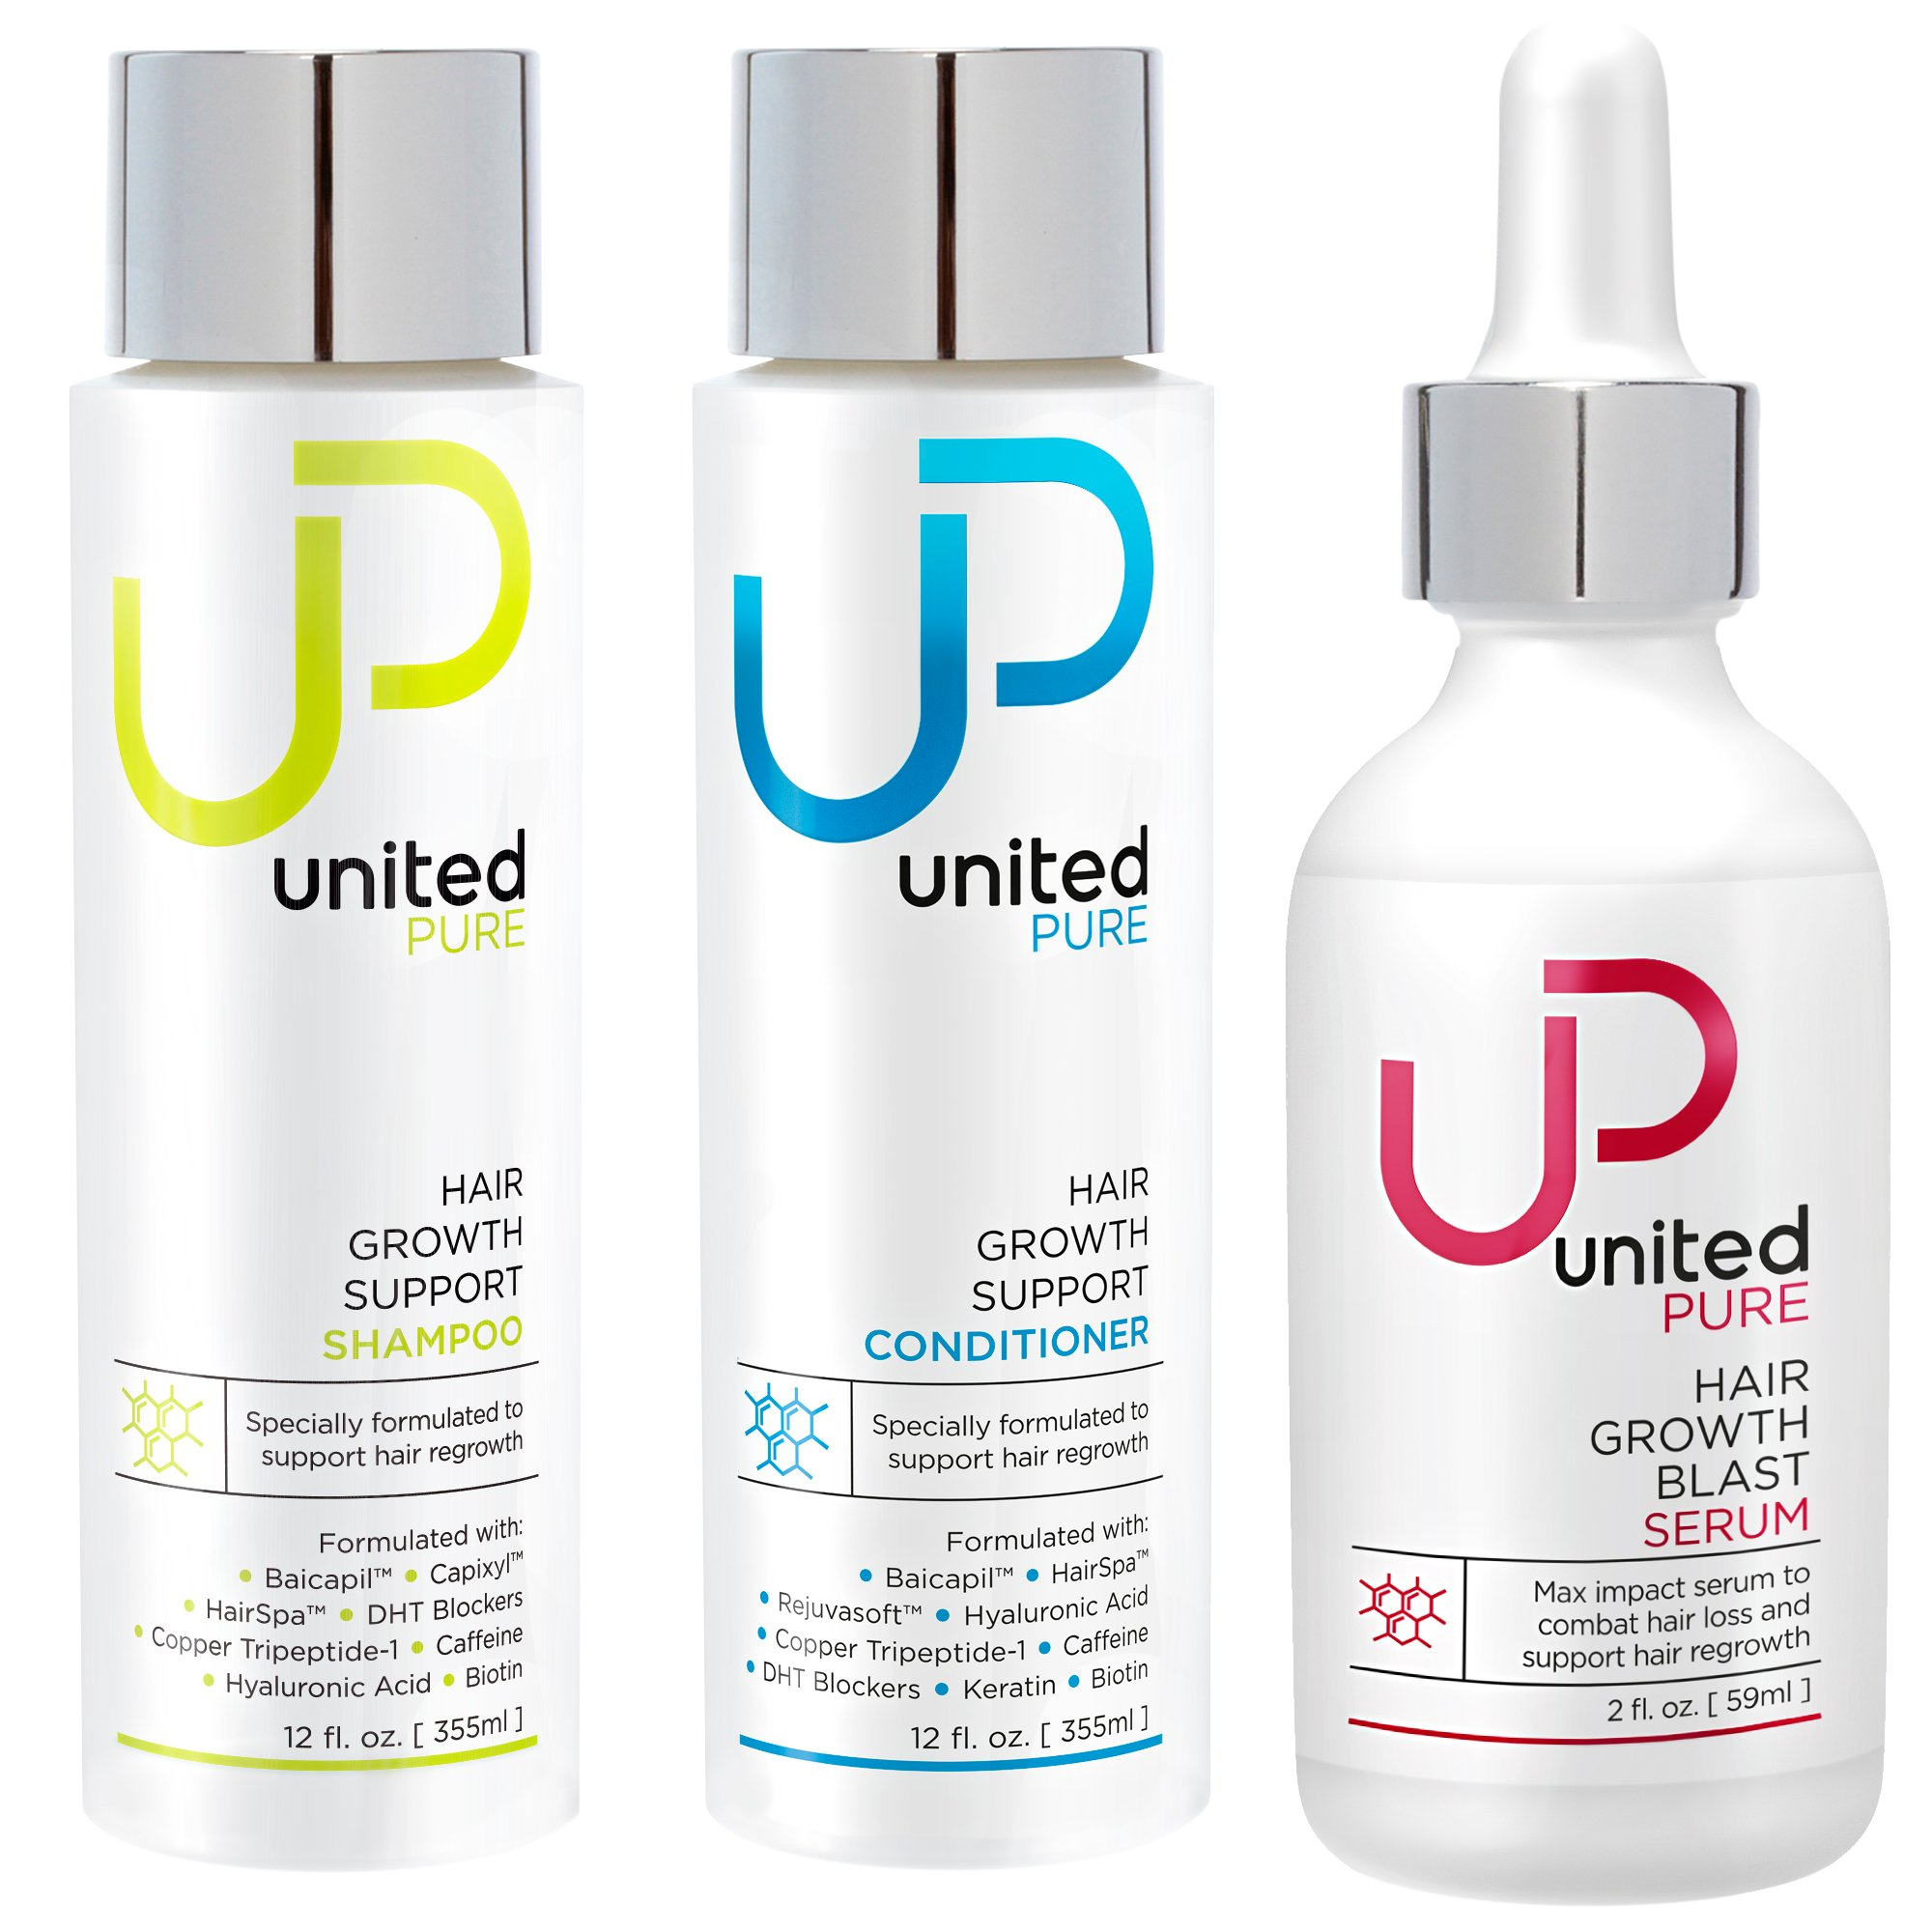 New Hair Growth Support Shampoo, Conditioner, and Serum - United Pure 12oz DHT Blocking Anti Hair Loss Combo w/Redensyl, Baicapil, Capixyl, HairSpa, Biotin, Hyaluronic Acid, Keratin & More